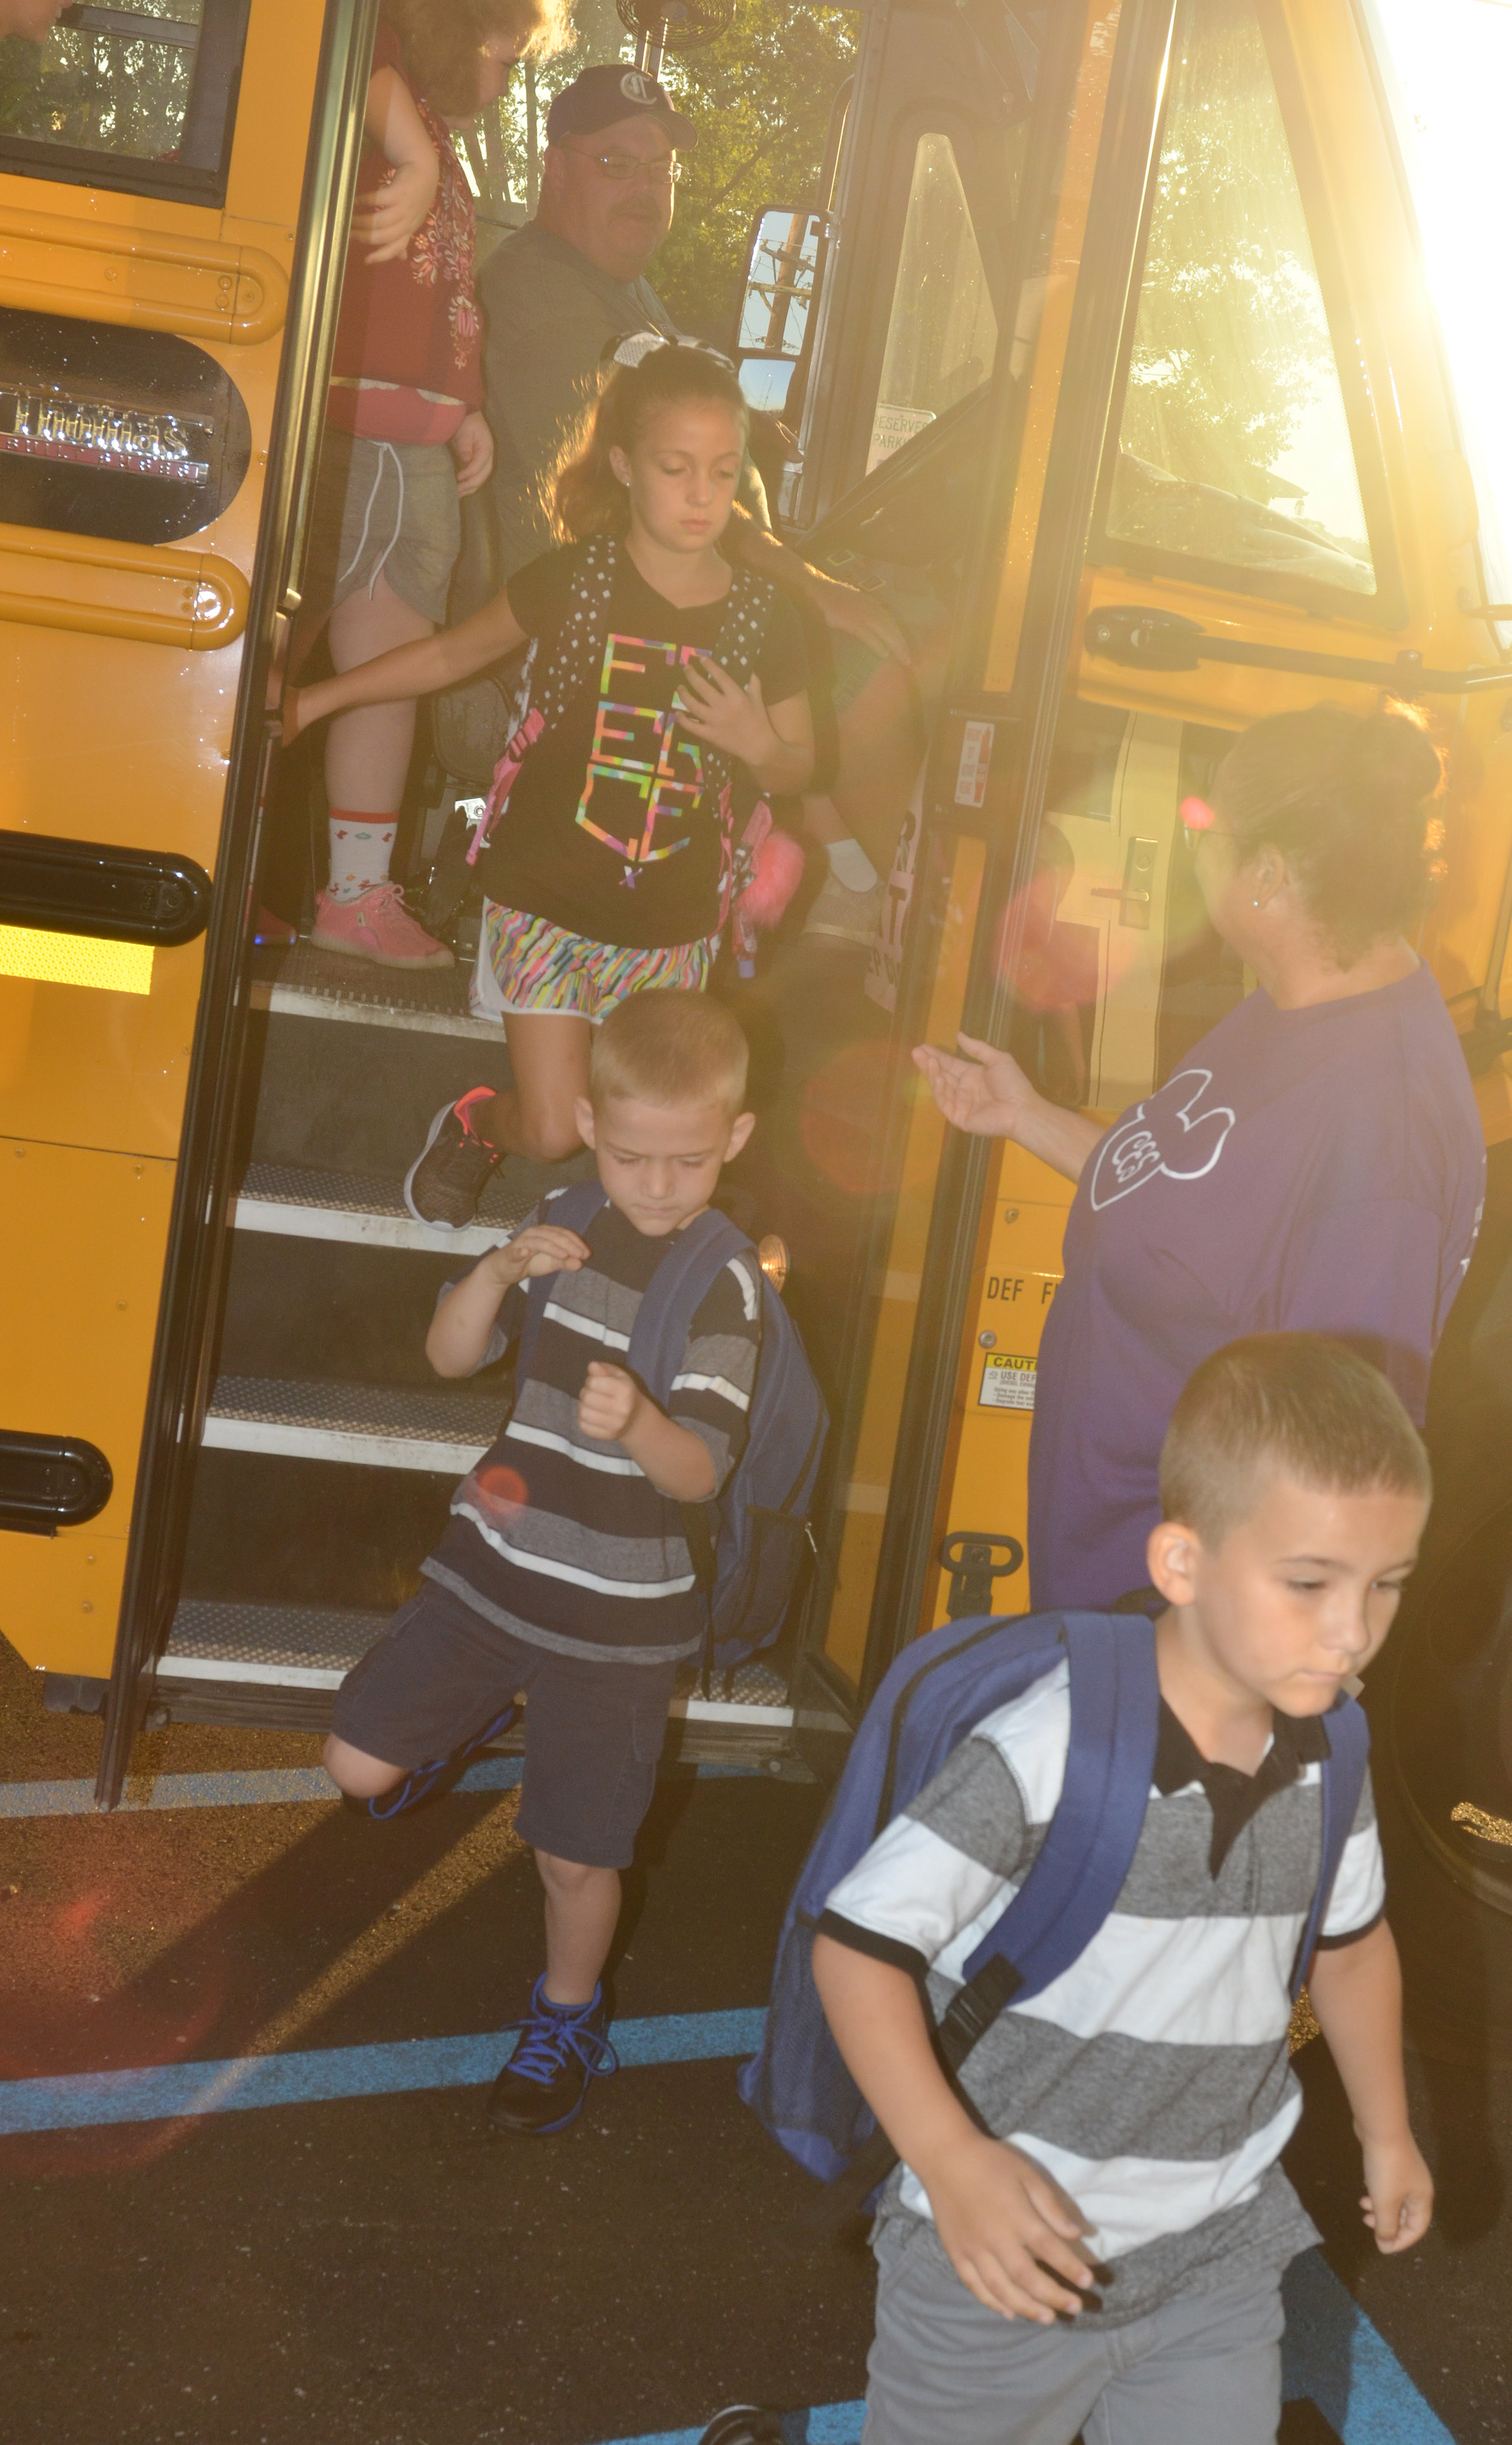 CES media center assistant Lois Kemp helps students off the school bus.